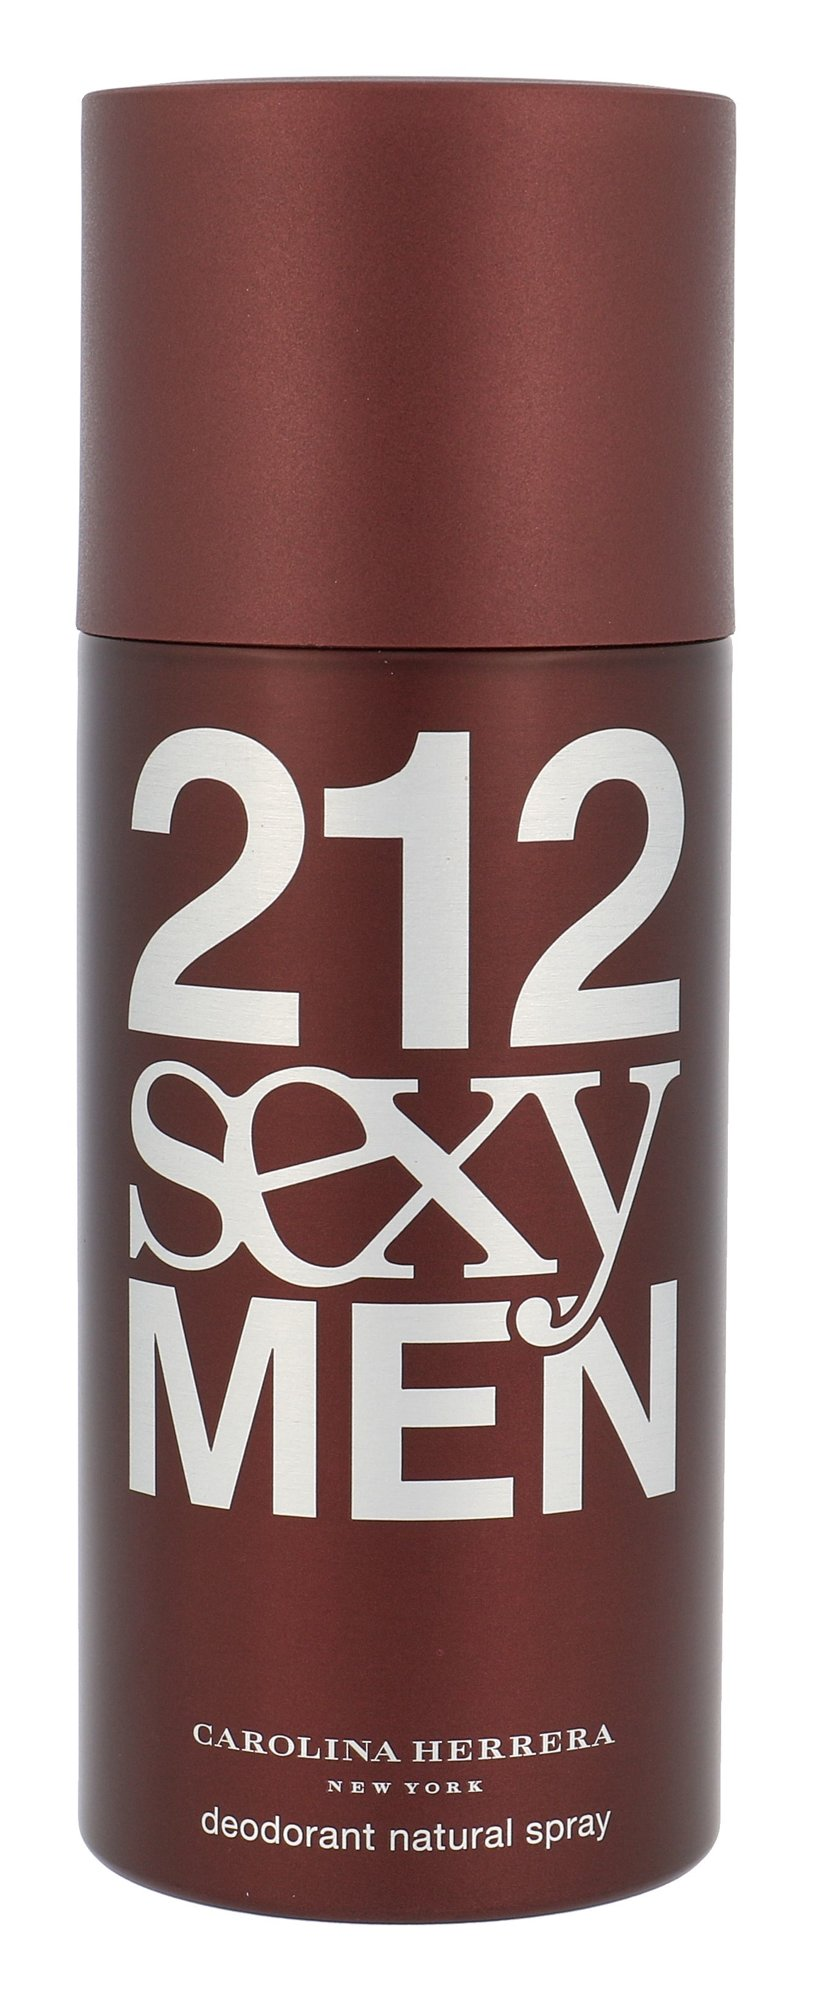 Carolina Herrera 212 Sexy Men  Deodorant, M, 150 ml